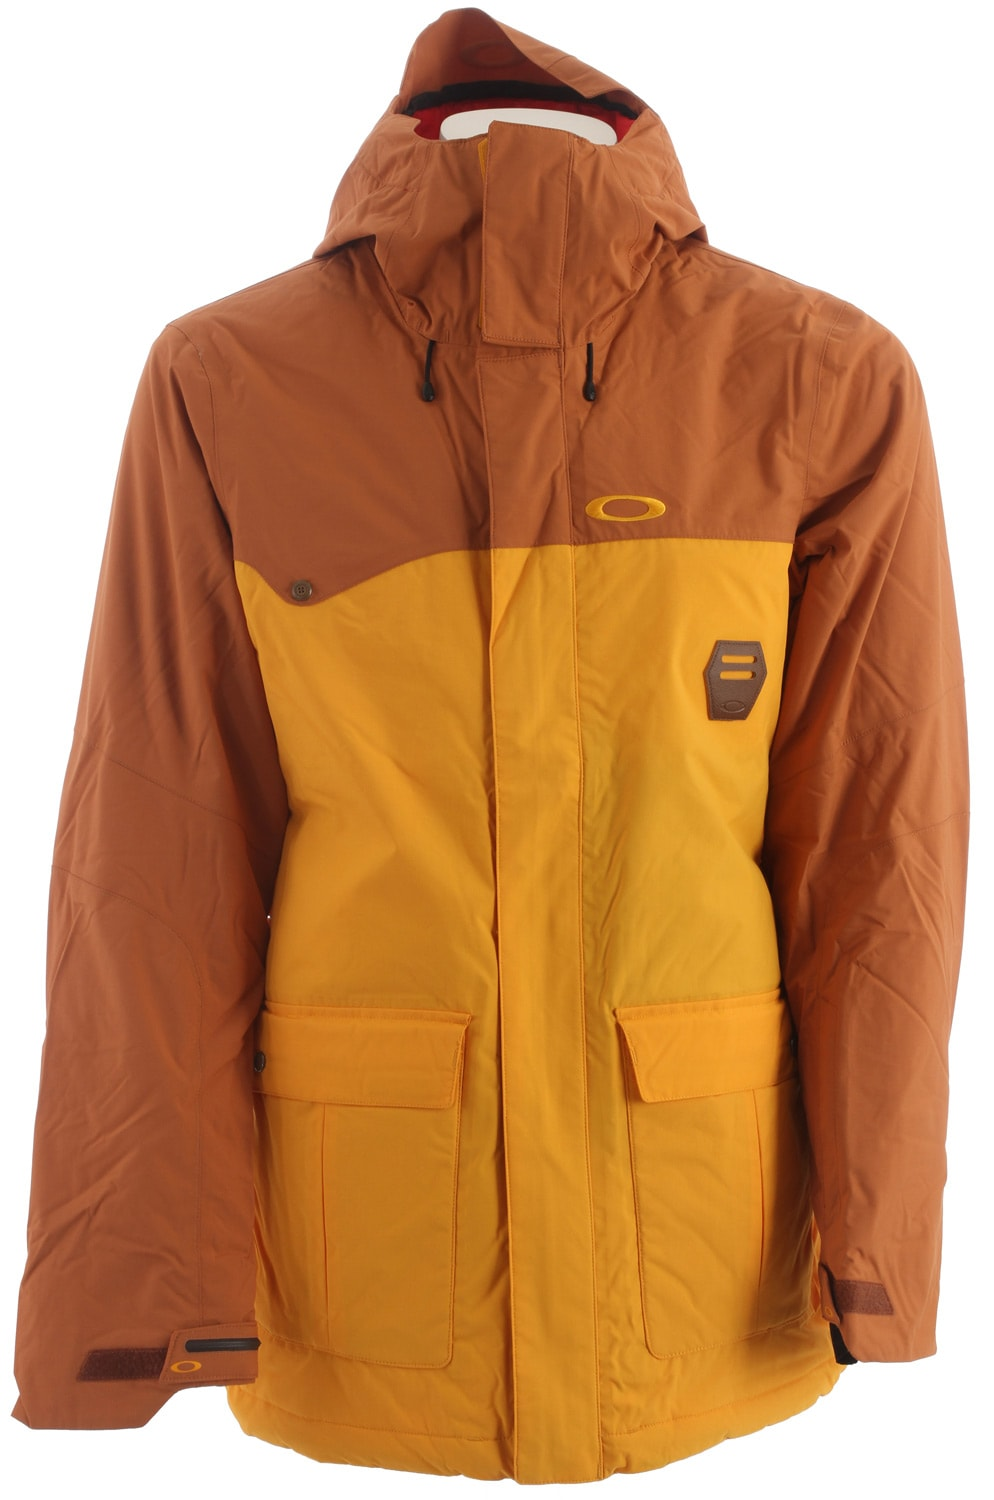 Quiksilver Snowboard Jackets